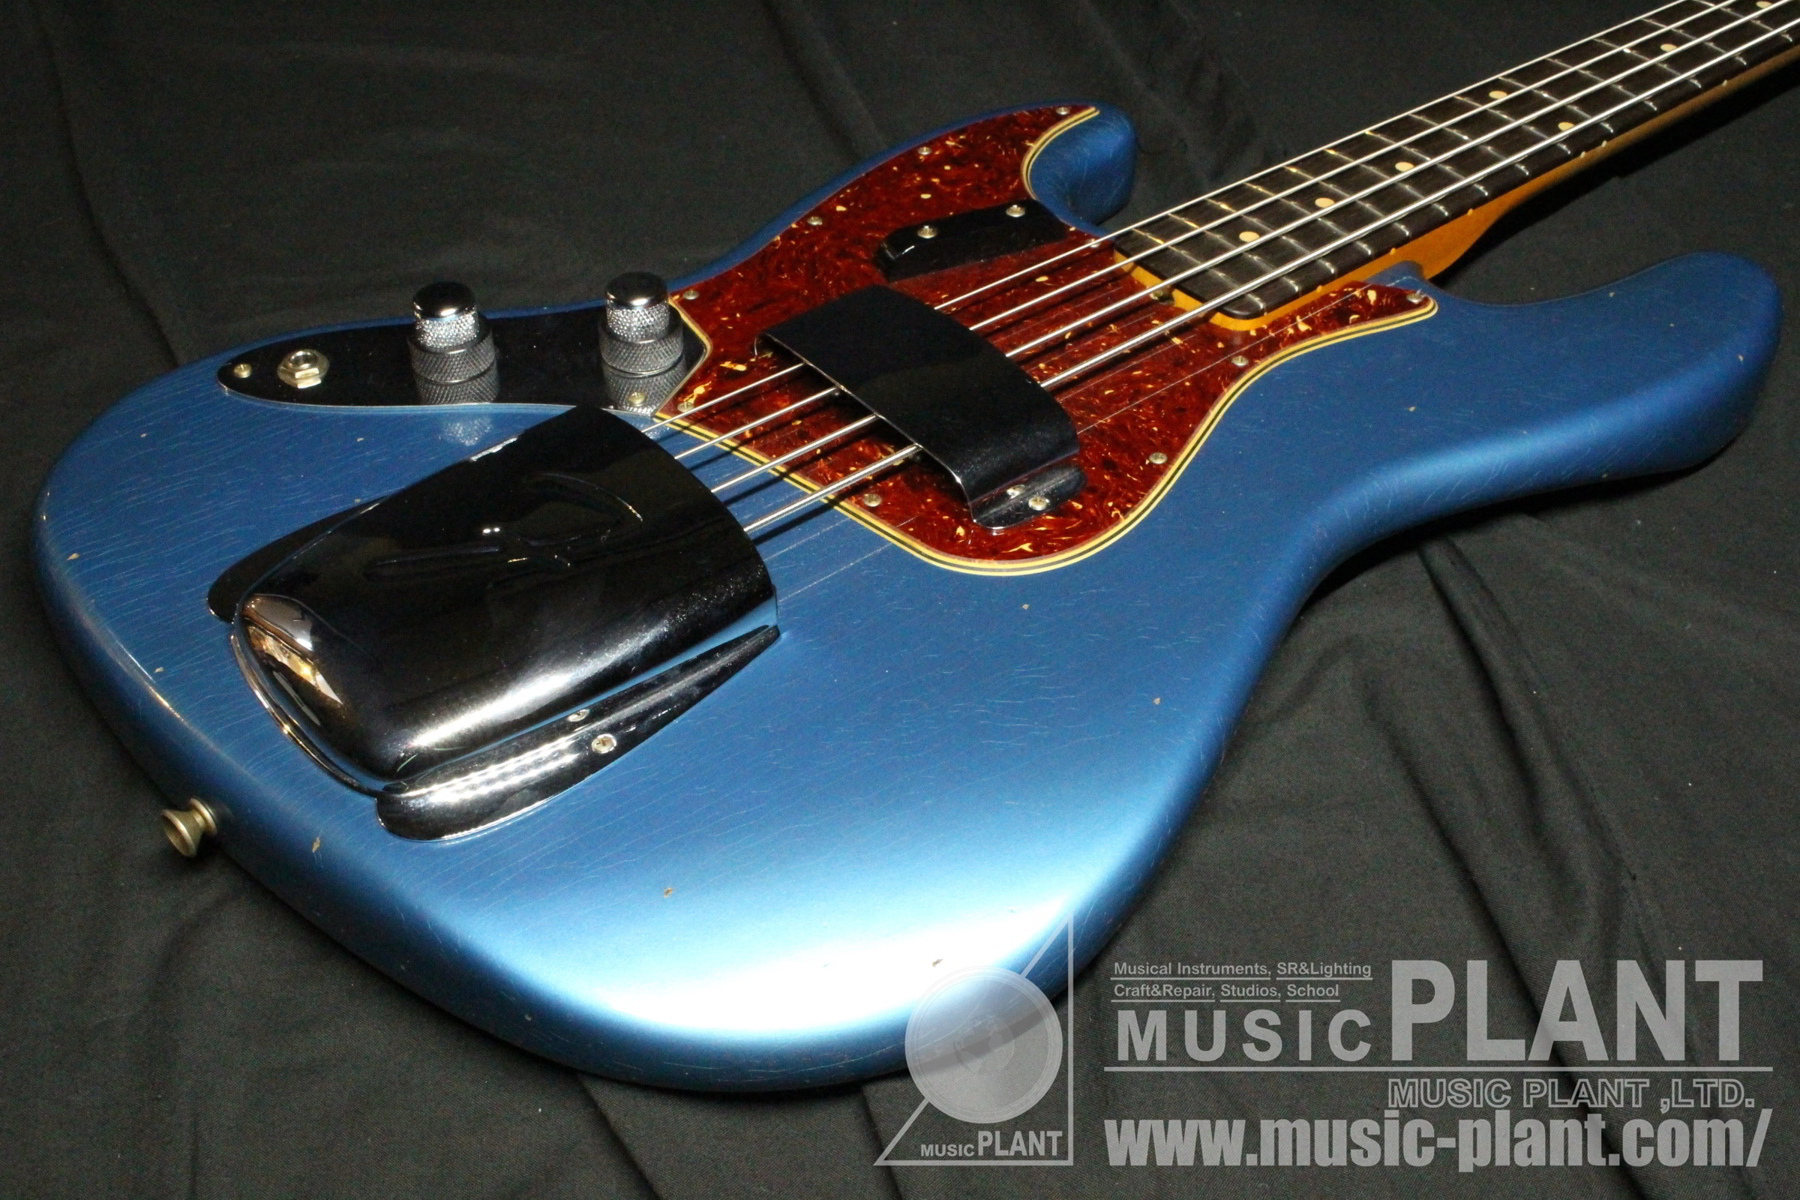 2019 NAMM Limited Edition 1962 Jazz Bass Journeyman Relic LH Aged Lake Placid Blue追加画像